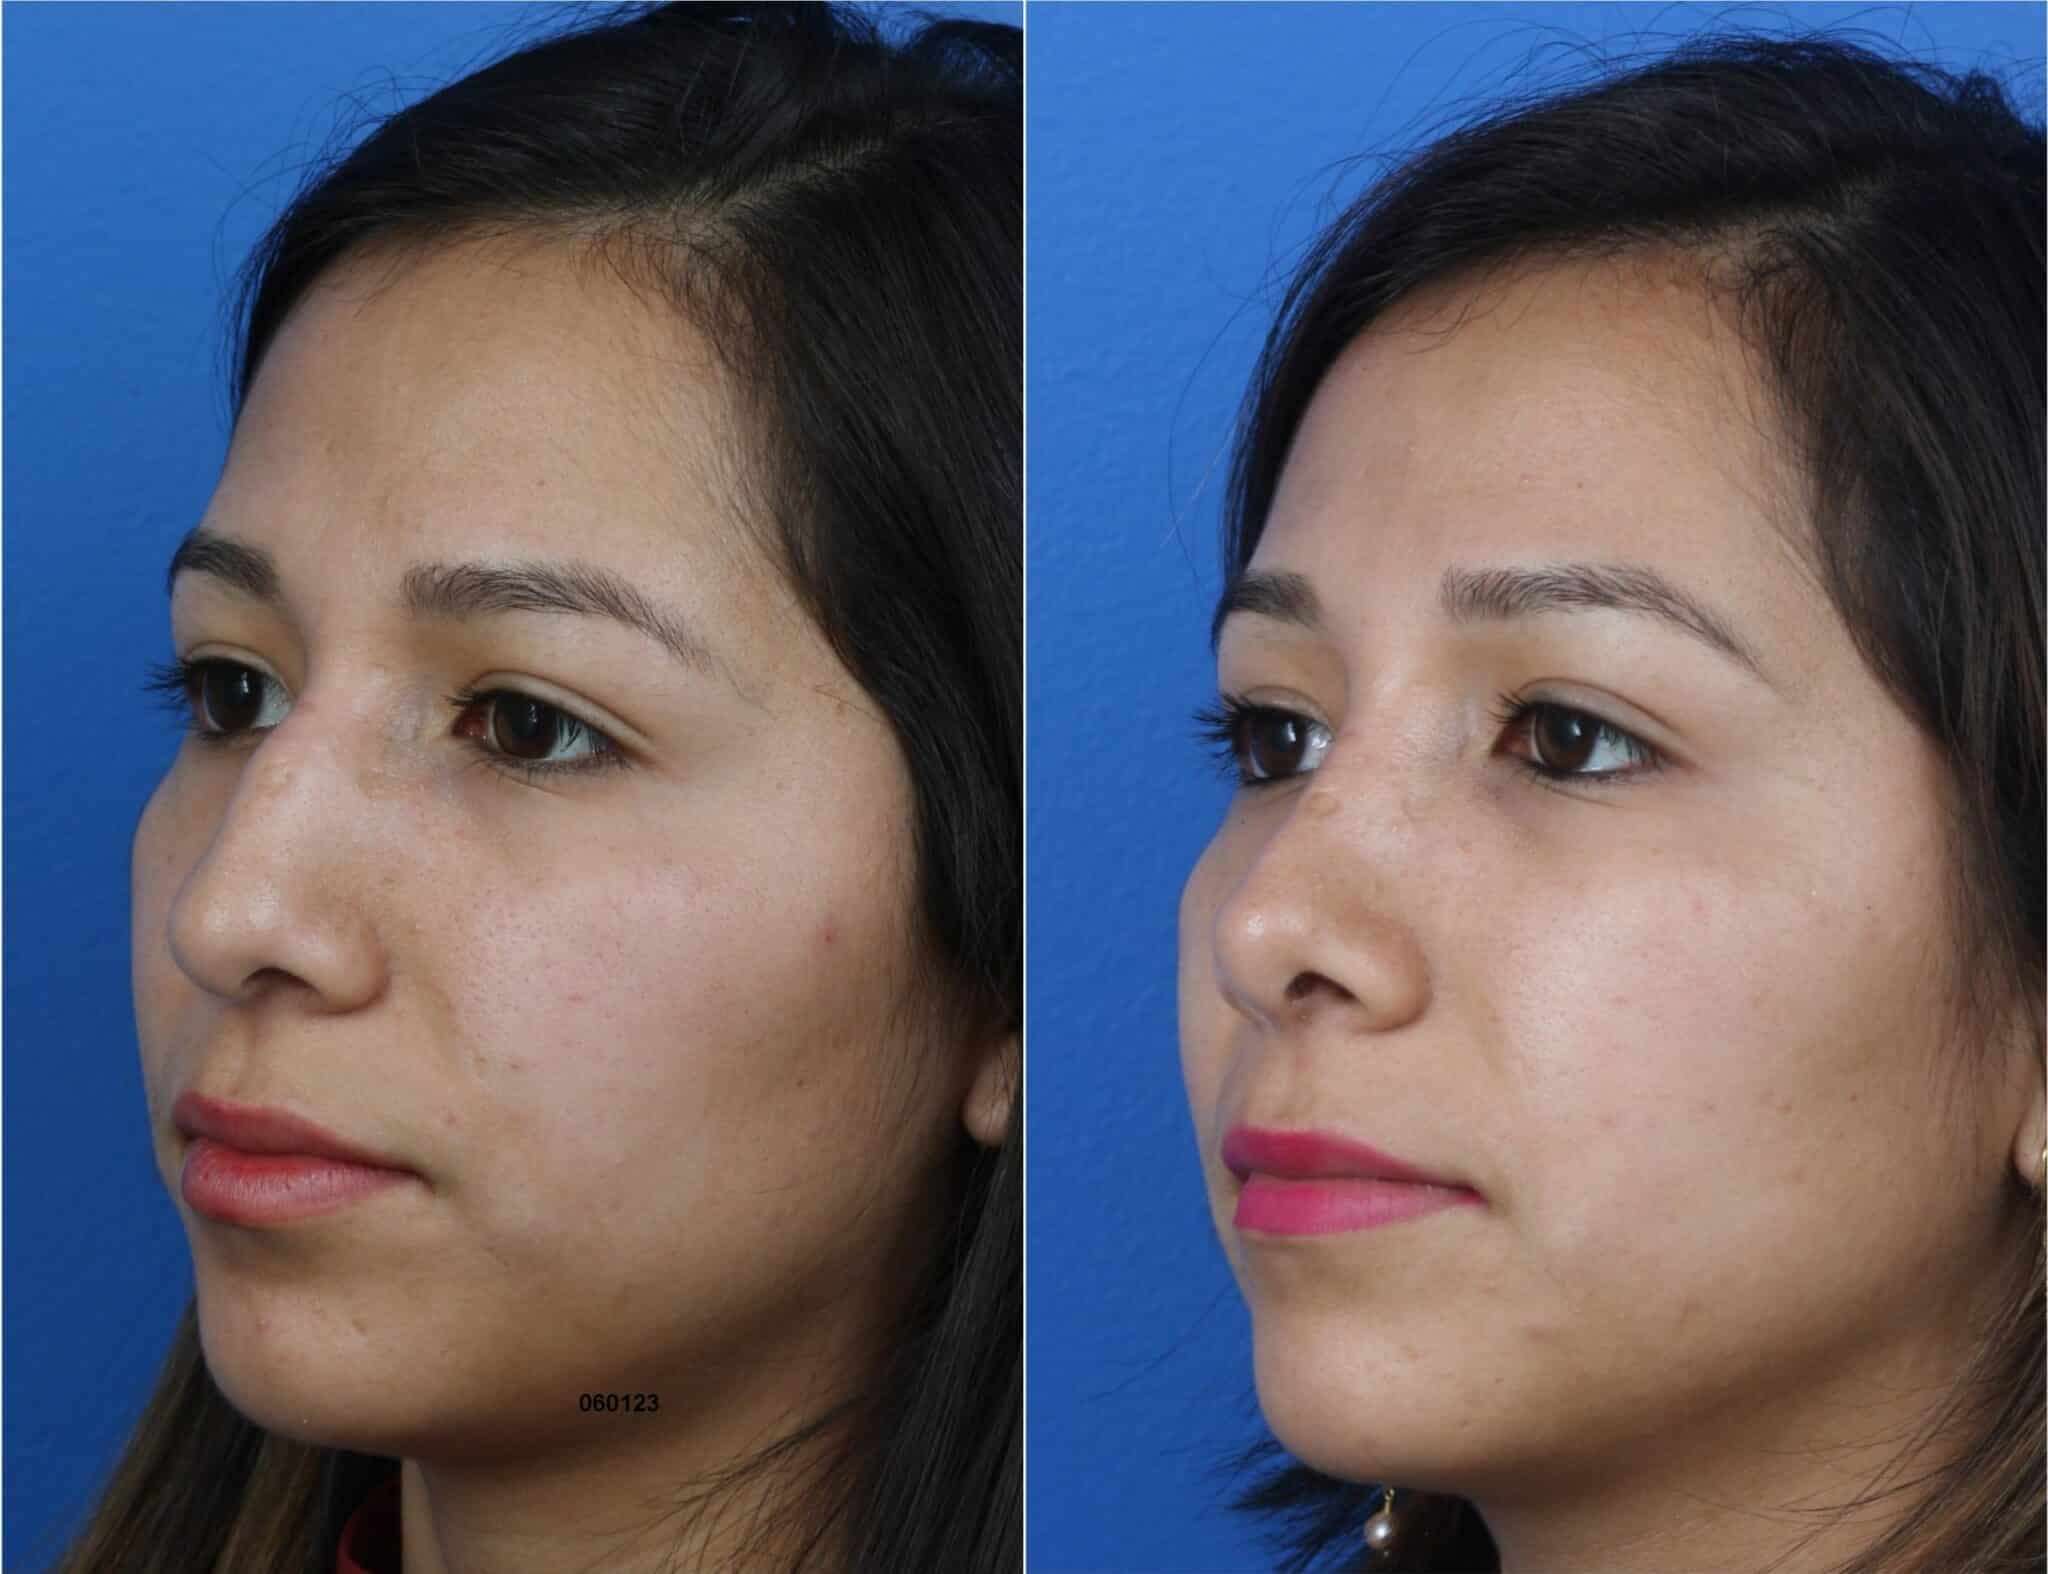 Rhinoplasty to Eliminate Dorsal Hump and Enhance Nose Shape by Dr. Miller